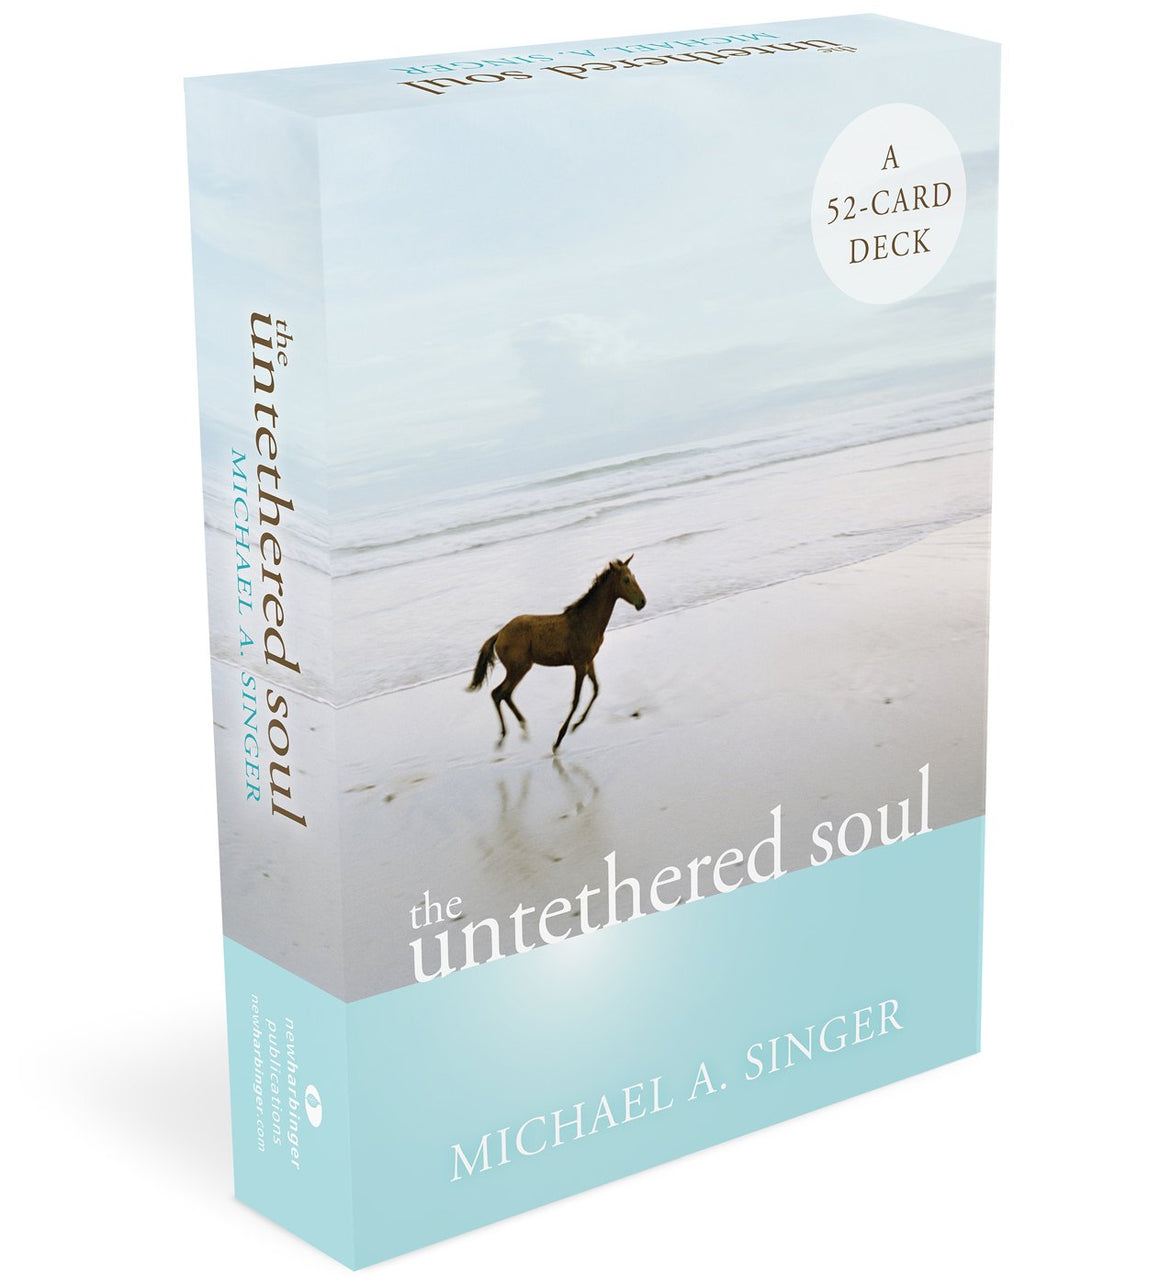 Untethered Soul Deck by Michael A Singer